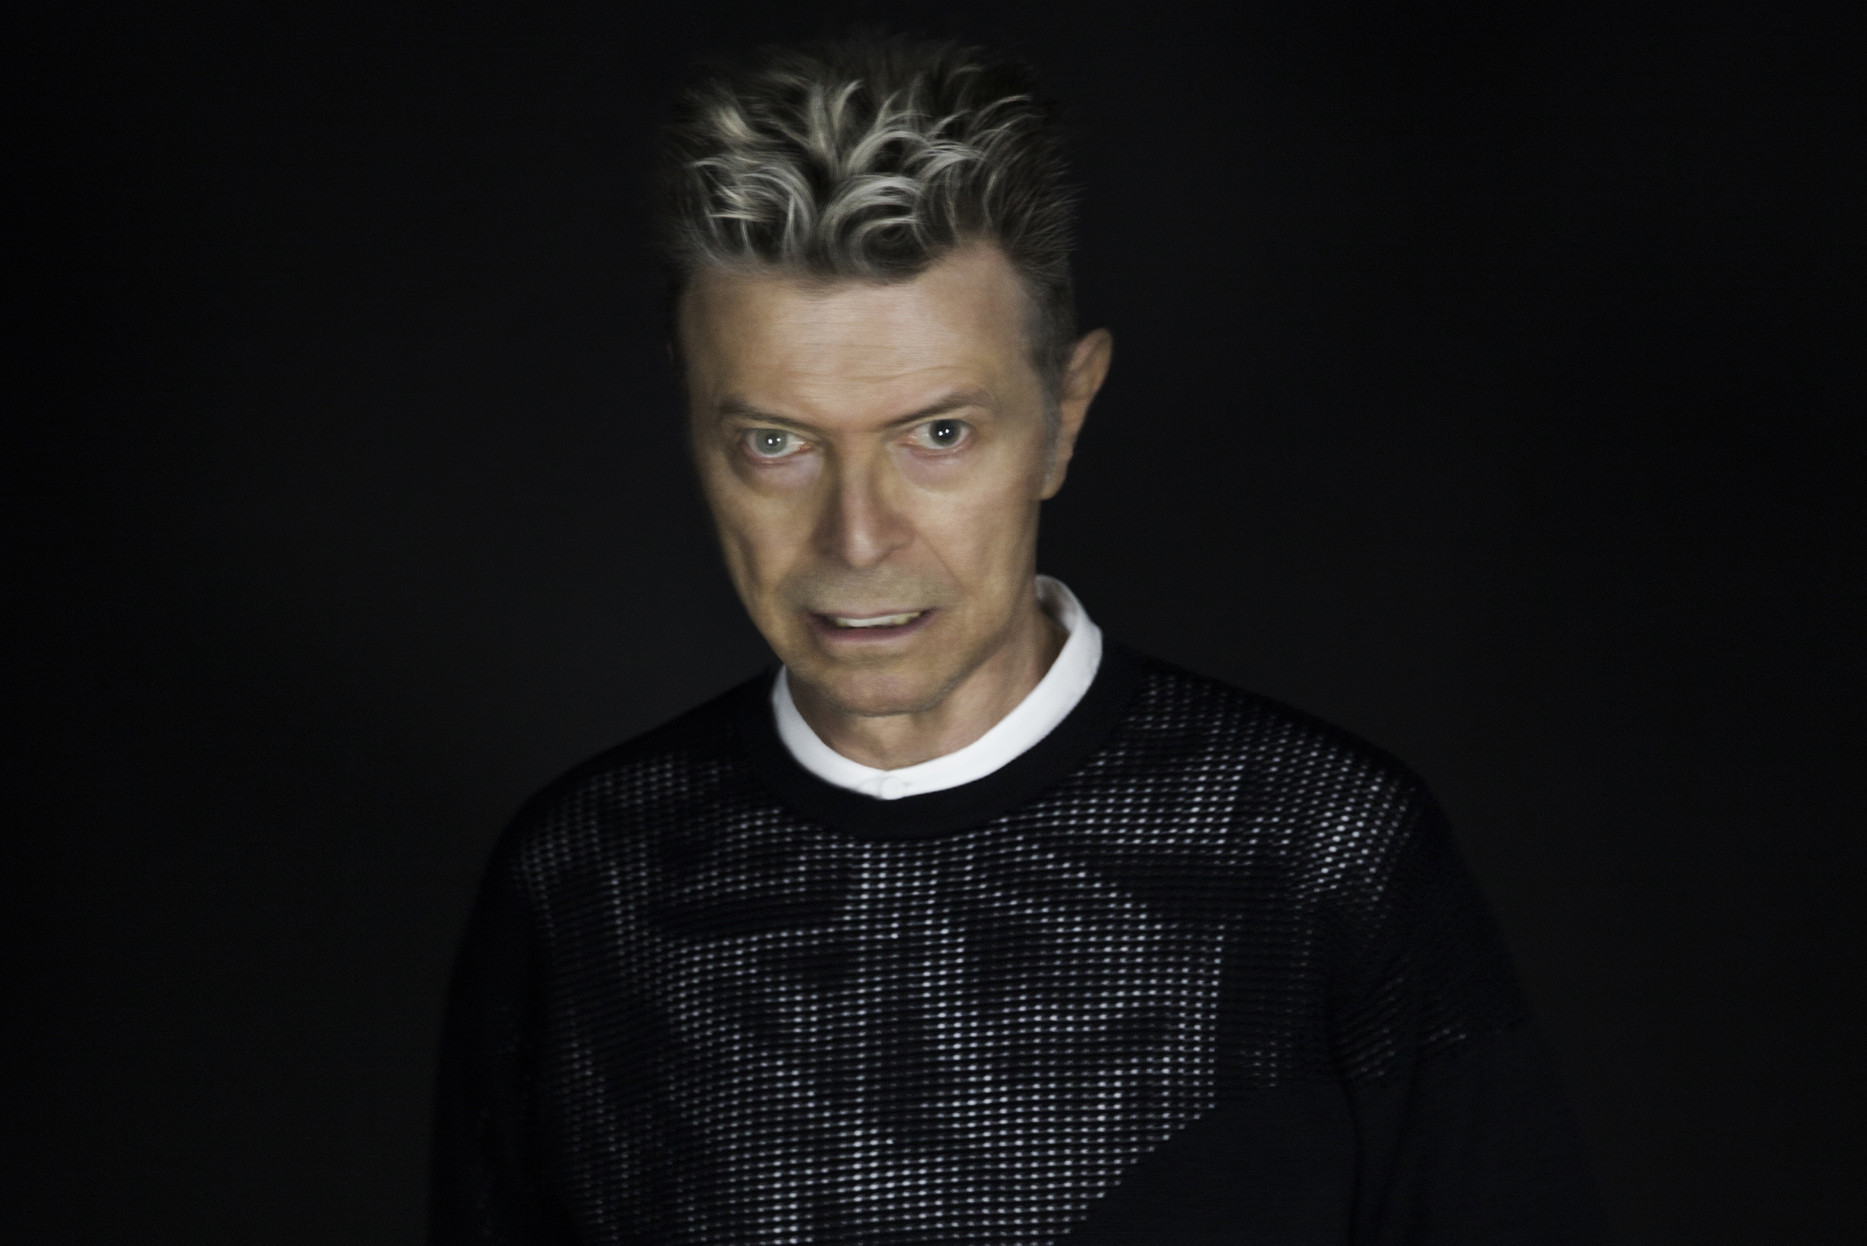 An exclusive look behind the making of David Bowie's secretive 'Blackstar' album